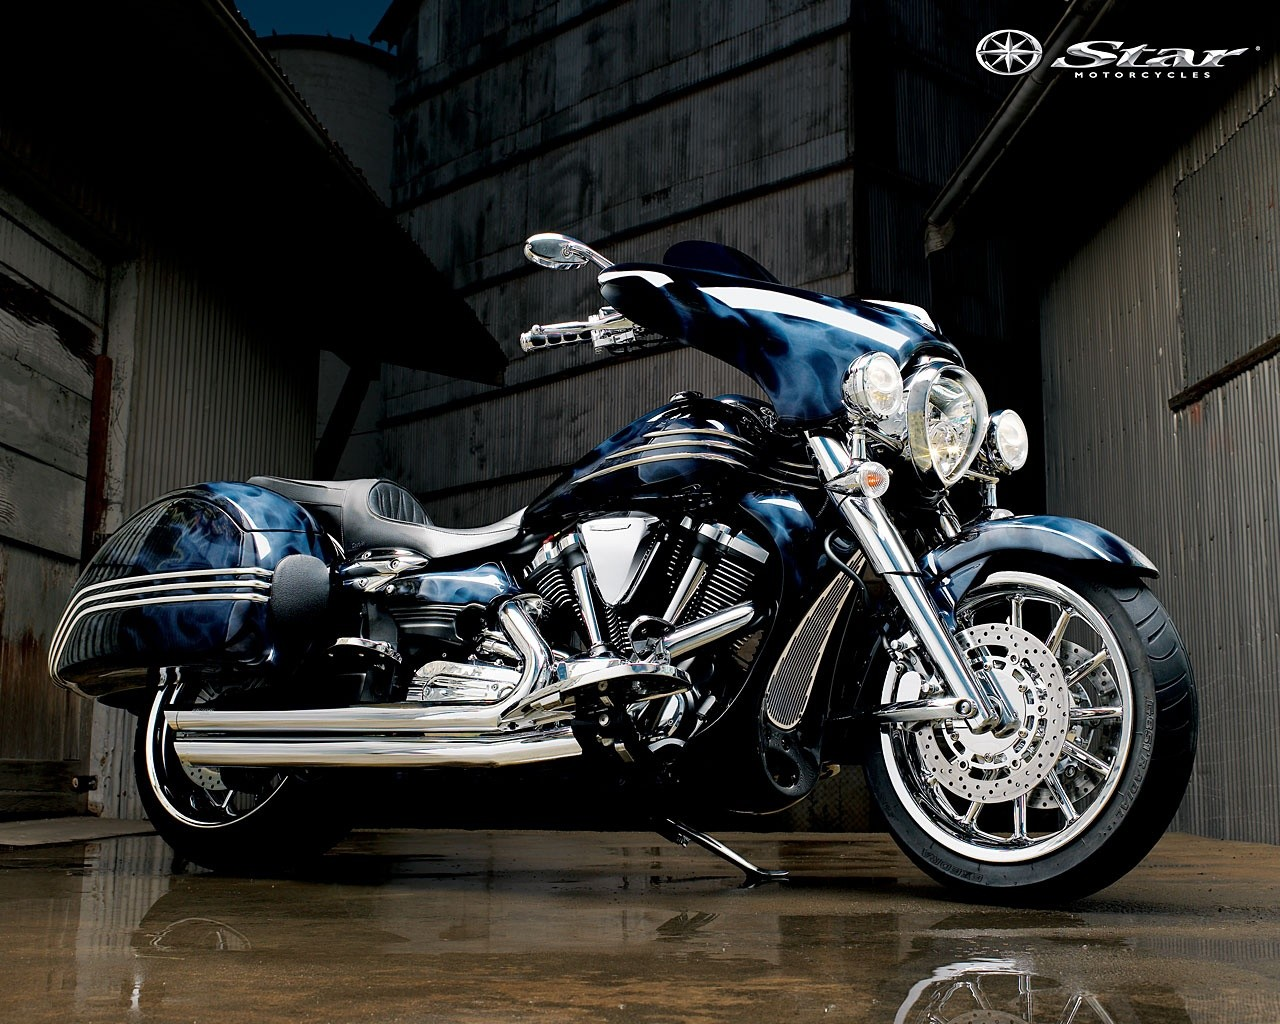 chopper motorcycles wallpaper - photo #45